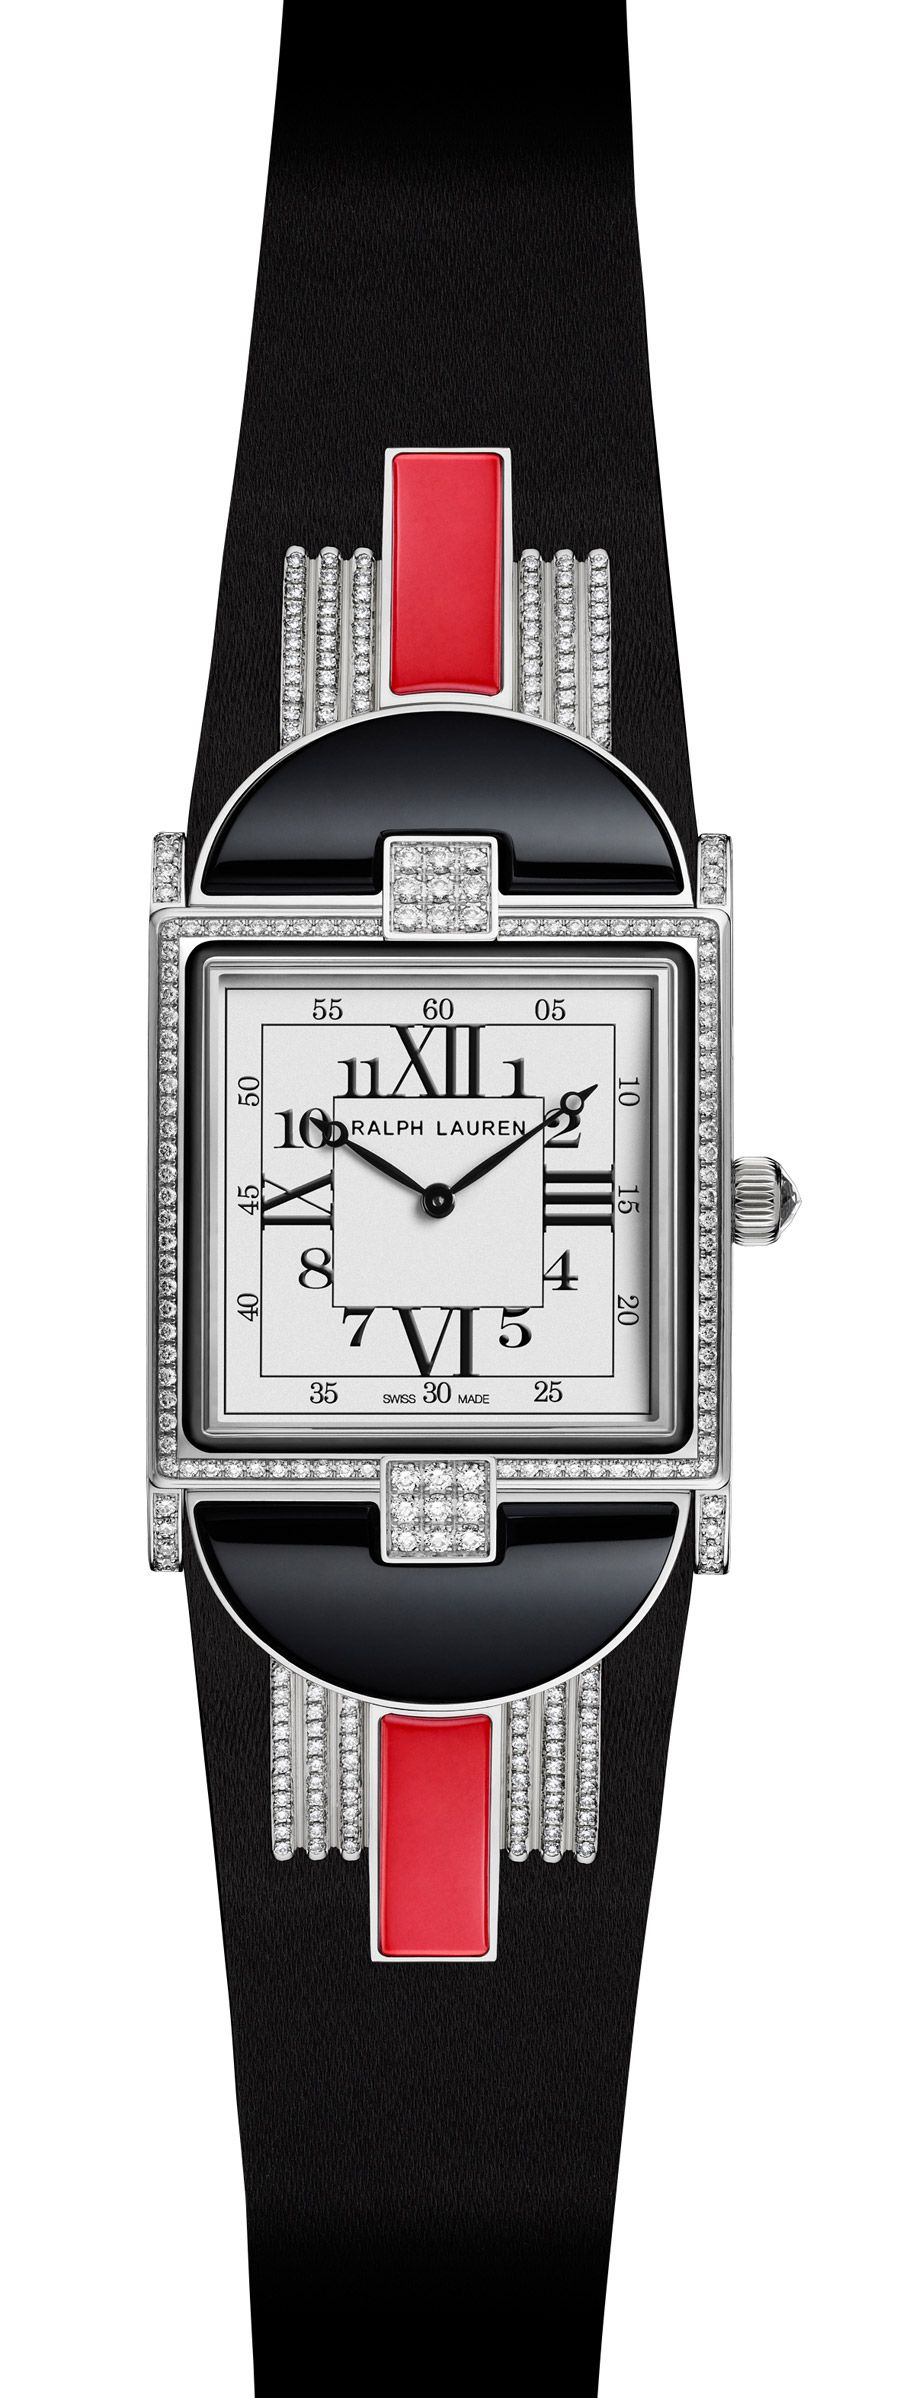 26.50mm model in white gold Modern Art Deco watch with red coral-based stone with movement RL430 made by Piaget.